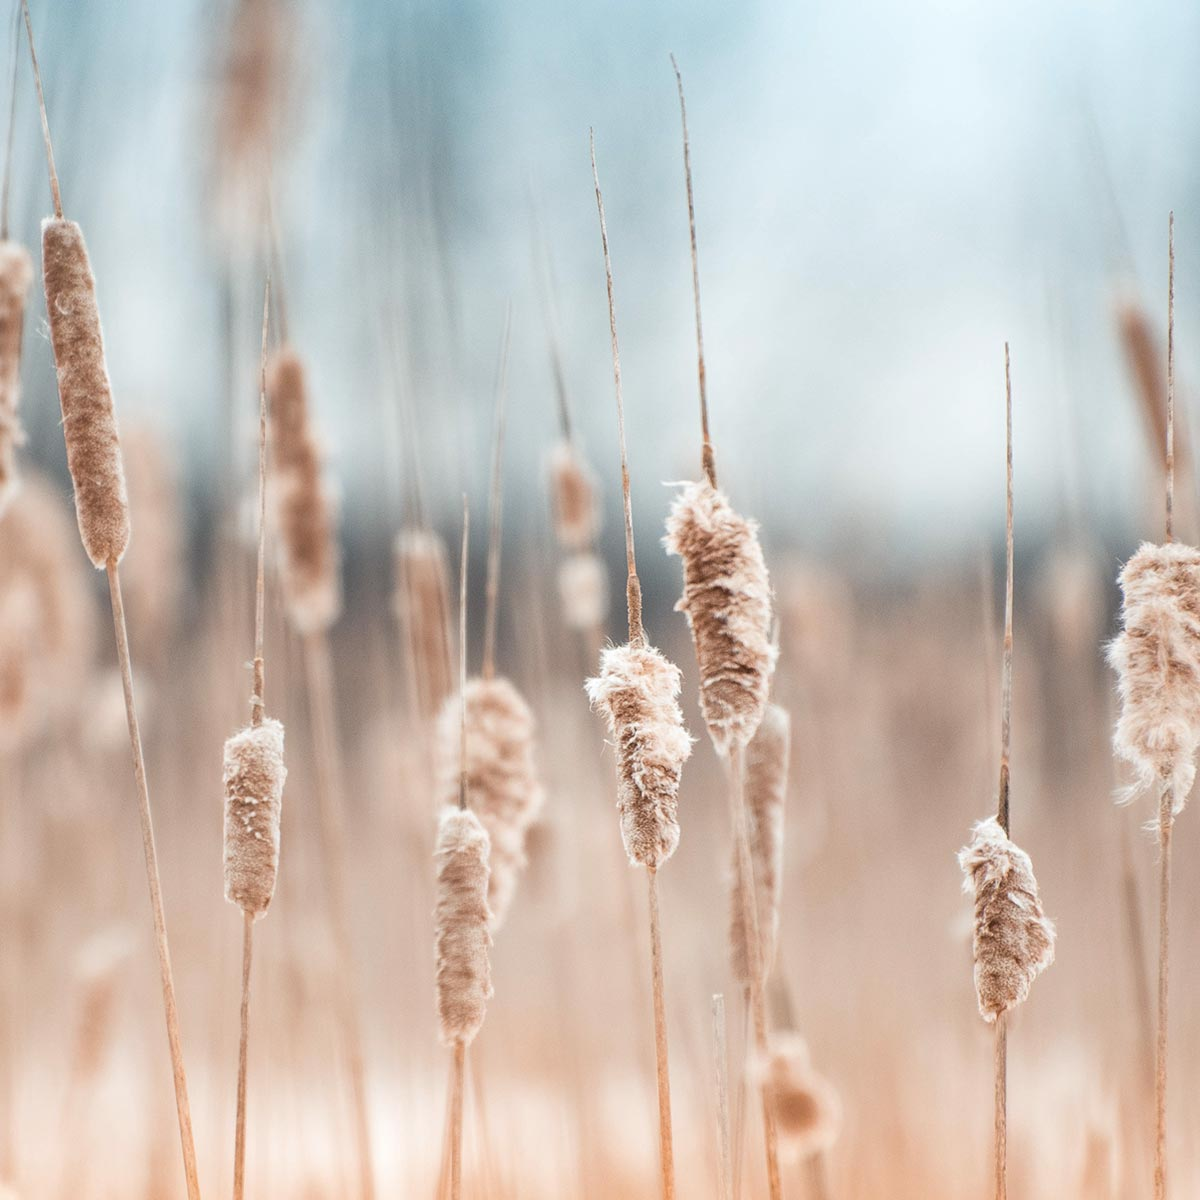 selective focus image of dried grasses against a blue sky